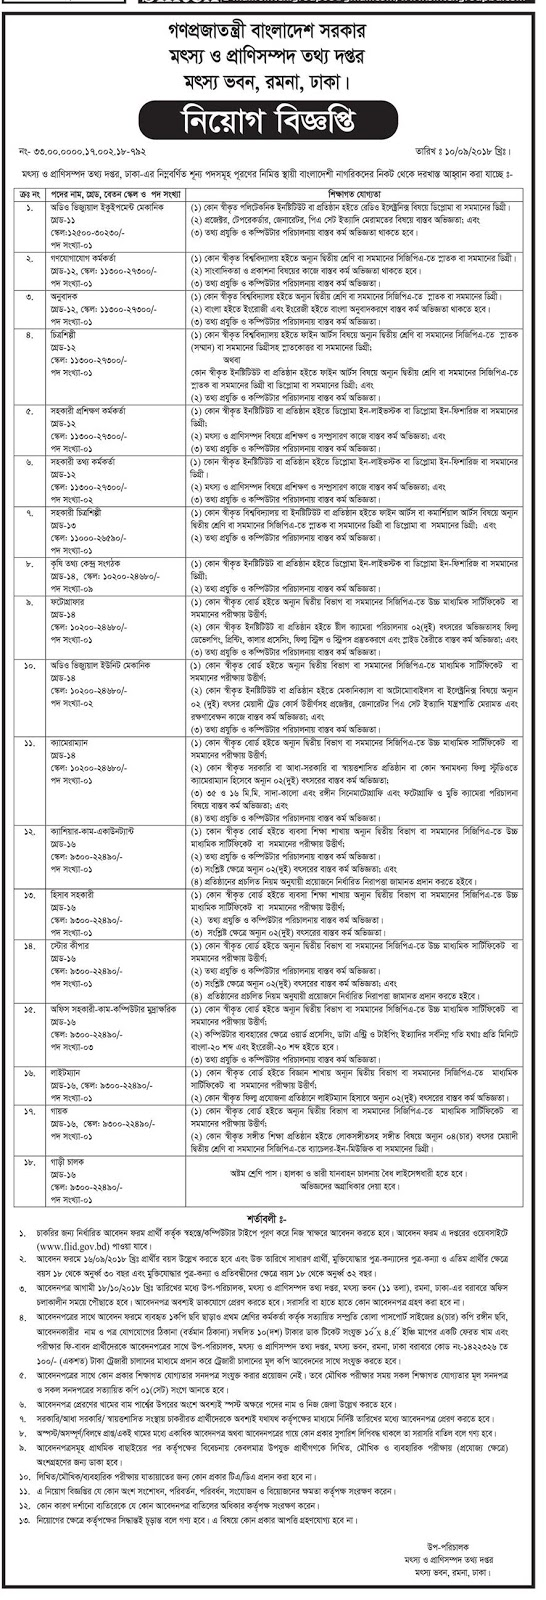 Department of Fisheries and Livestock Information Academy Job Application Form